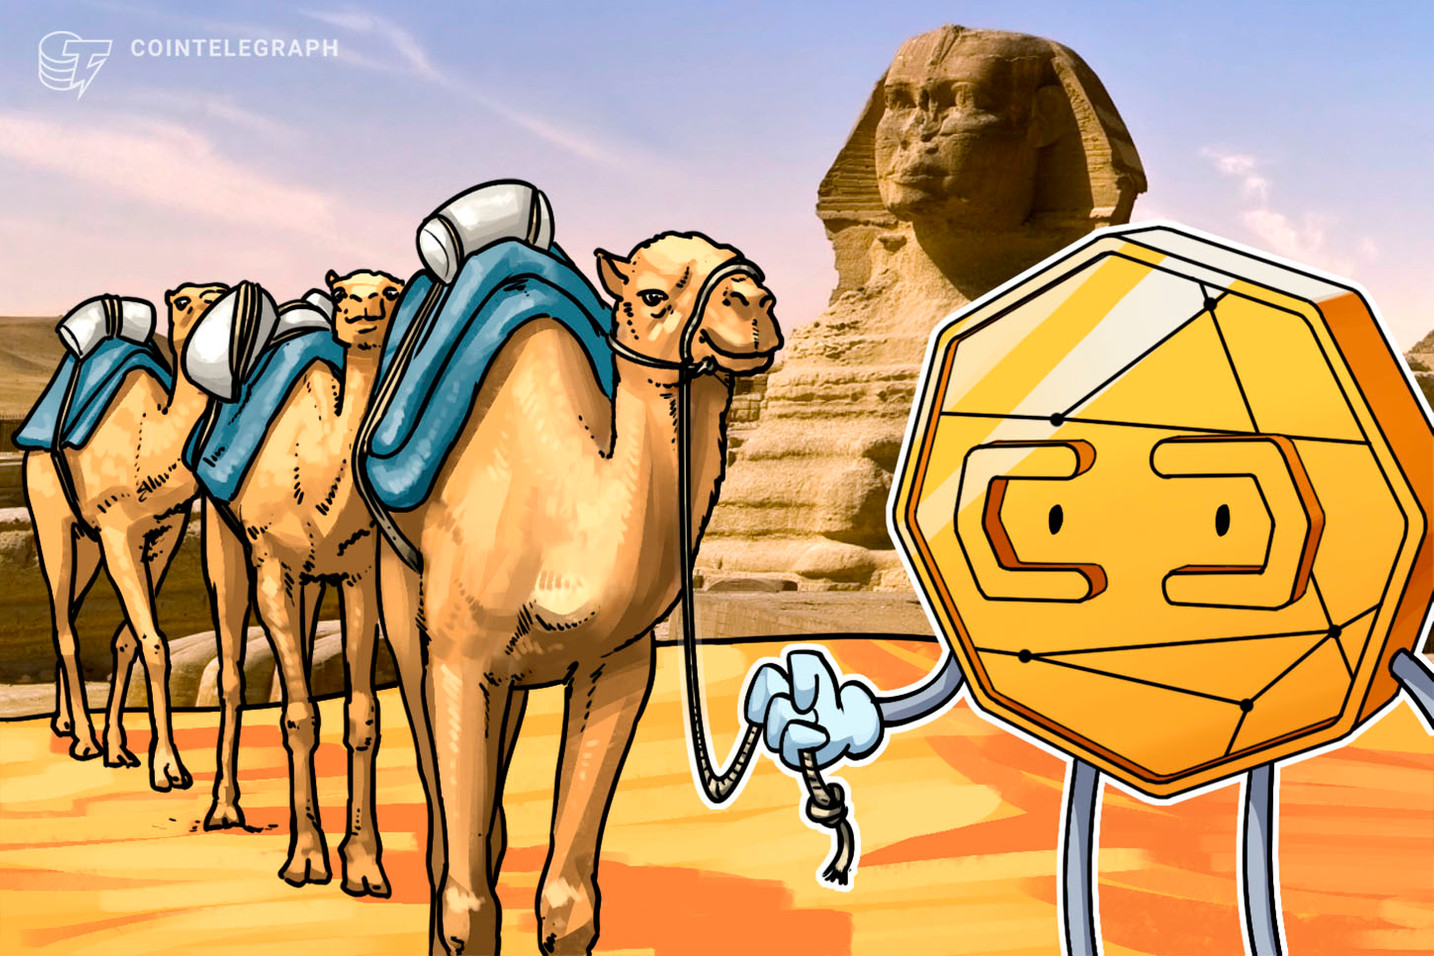 Egypt's Central Bank Conducting 'Feasibility Studies' Around Digital Currency Issuance